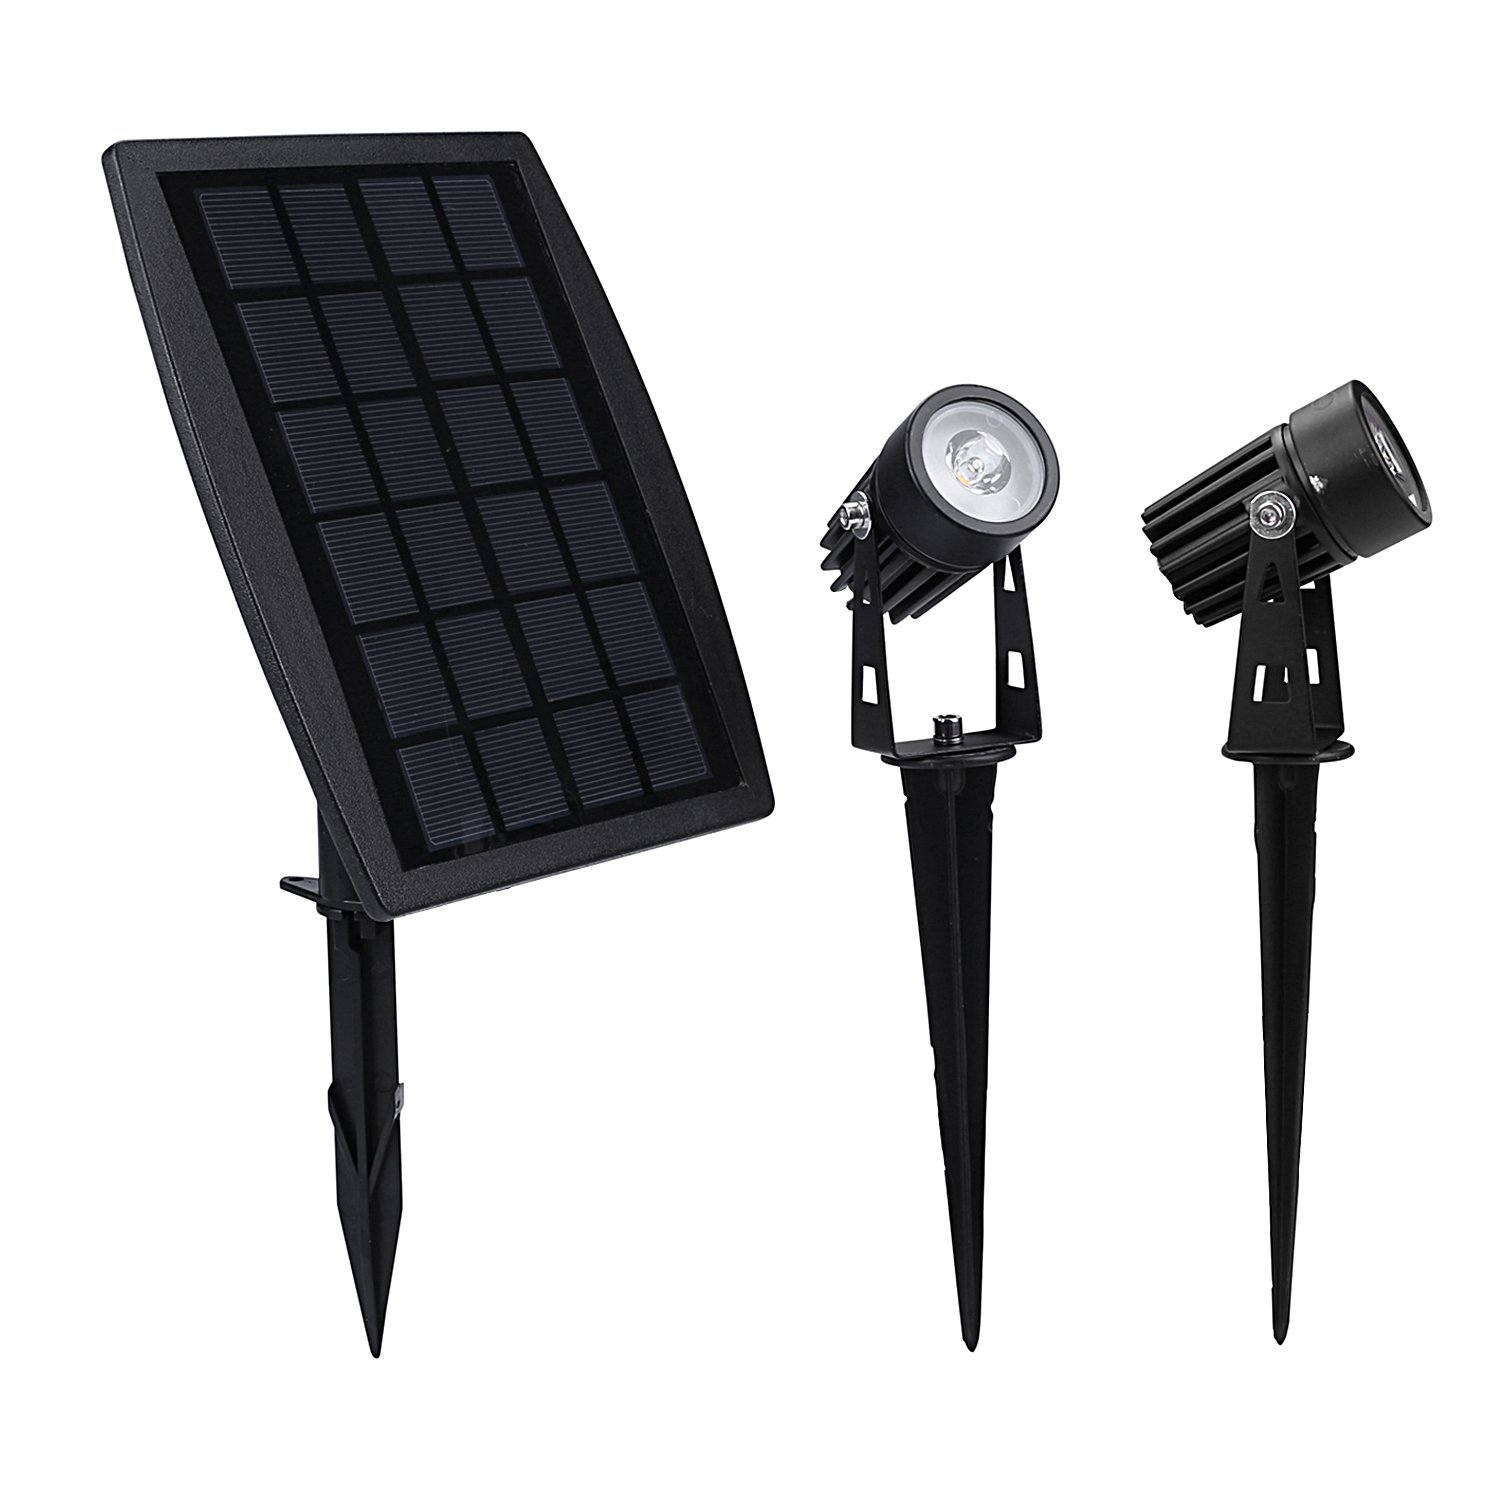 Findyouled Solar Spotlight, Waterproof Outdoor Solar Lights Landscape Lighting Wall Light Auto On/Off for Yard Garden Driveway Pathway Pool Tree Patio by findyouled